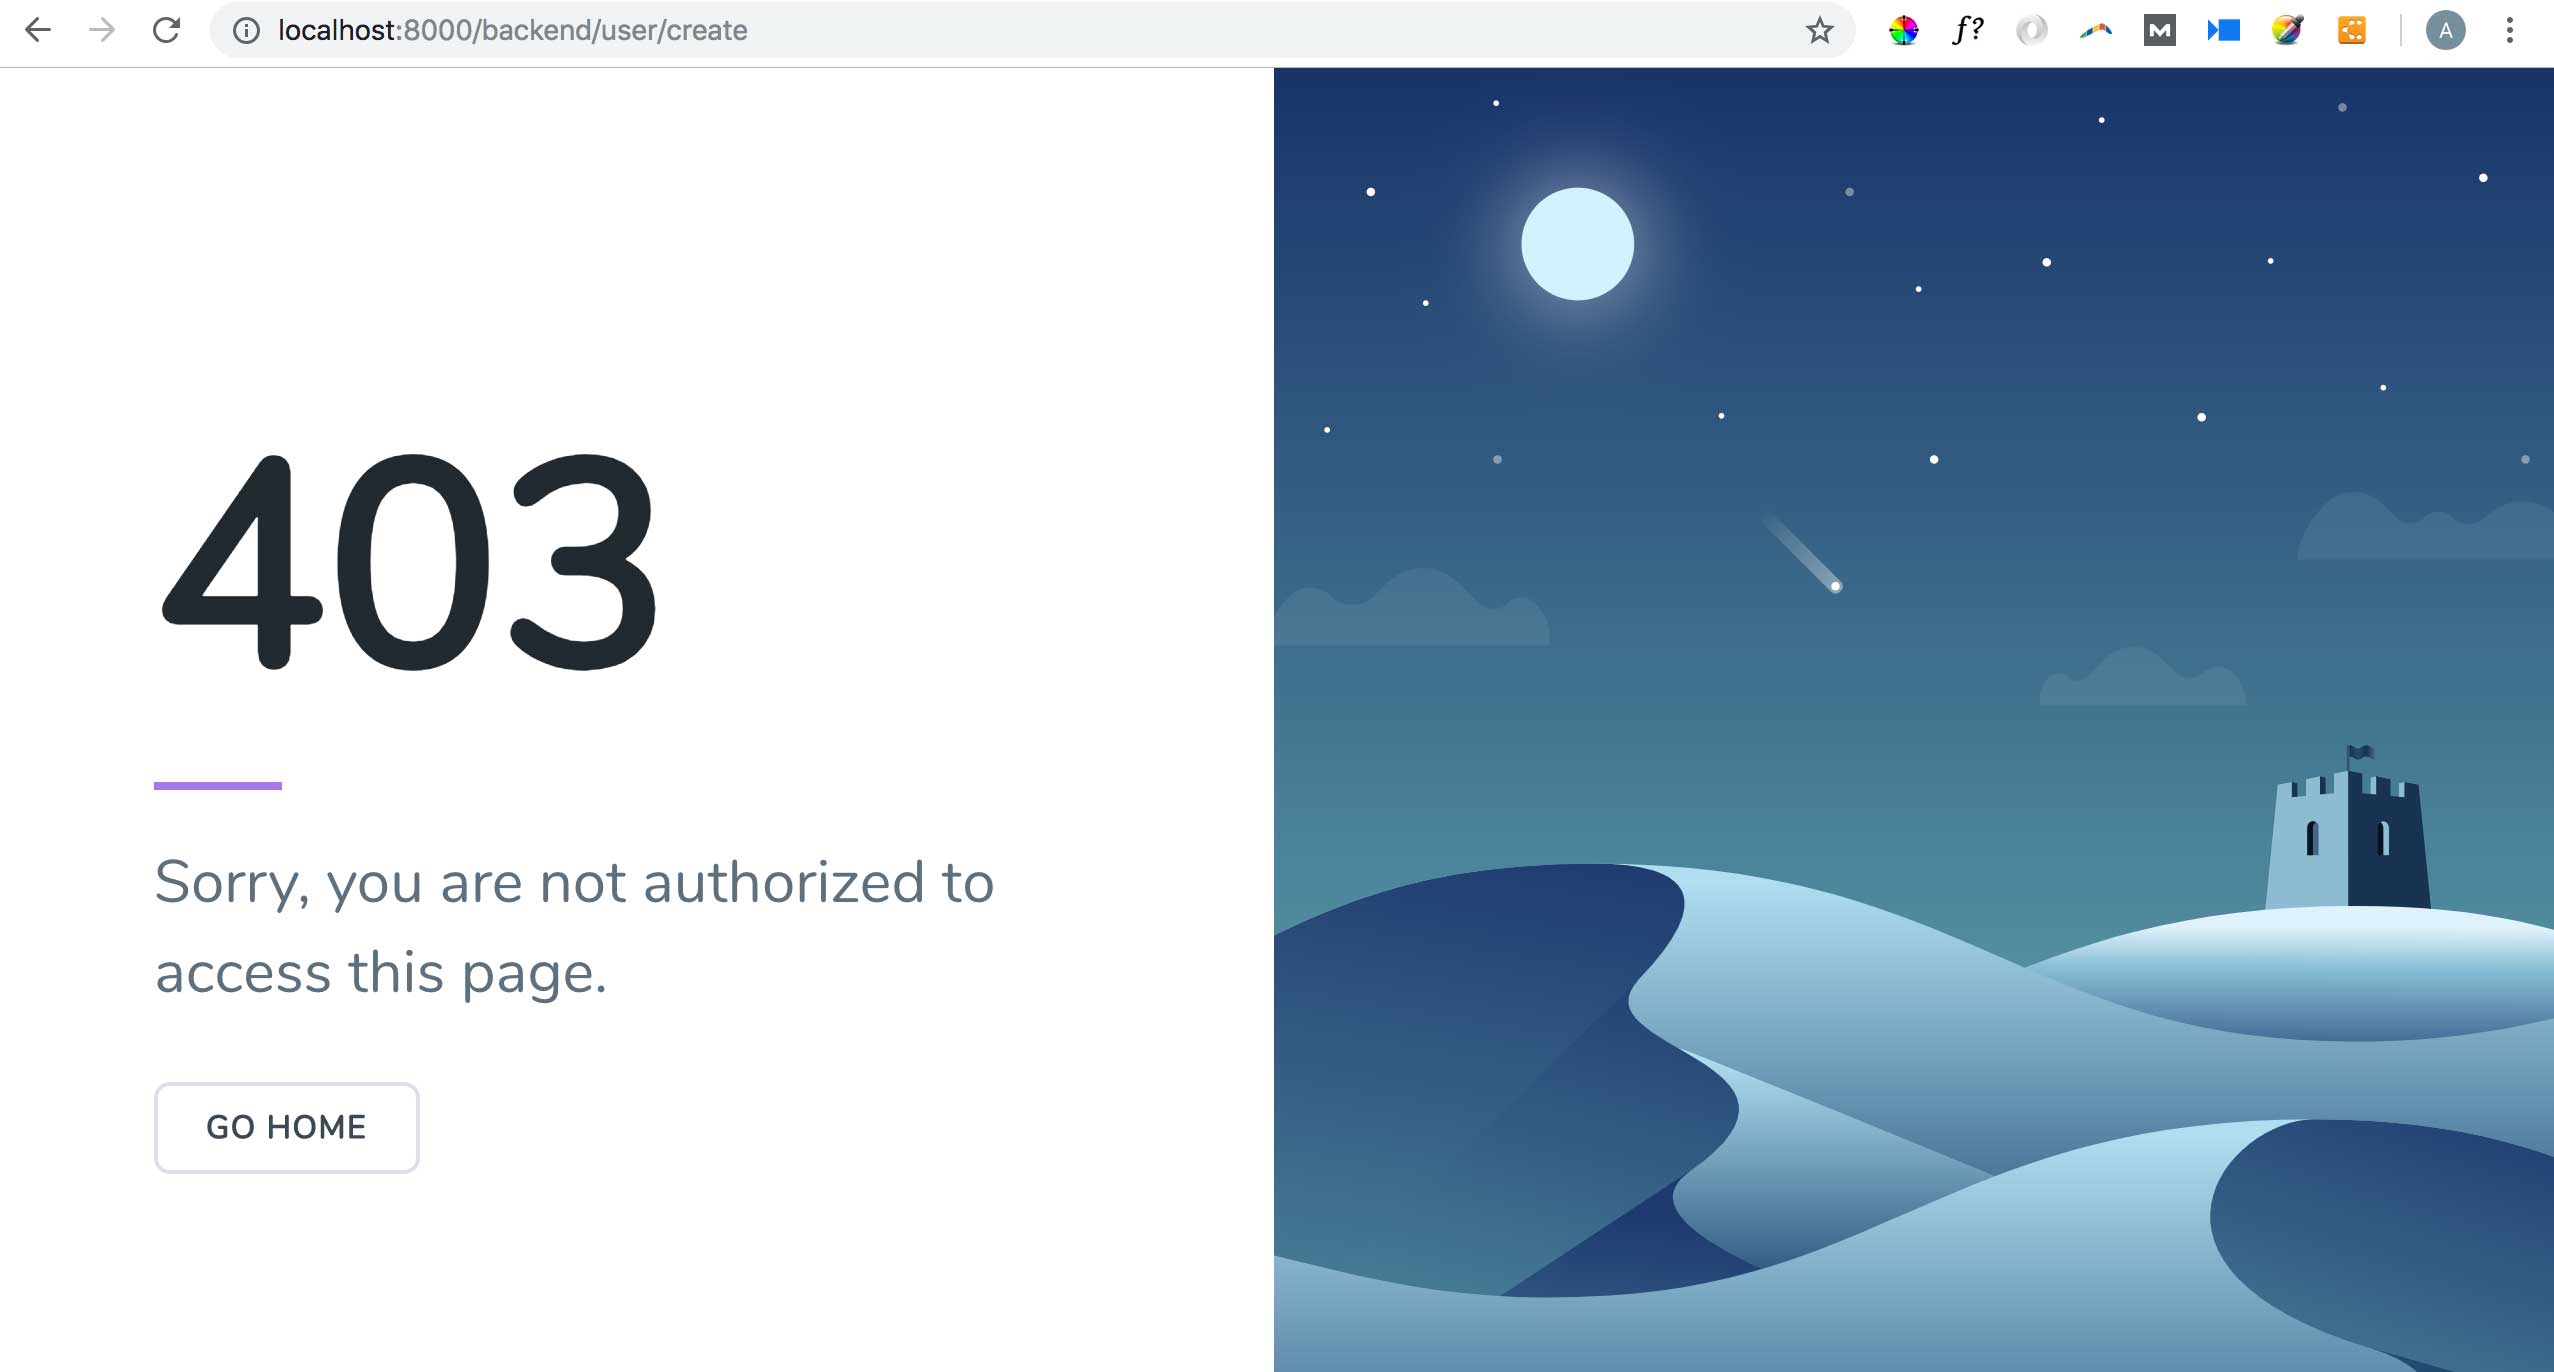 Access Control with Laratrust - WordPress-Like Blog Laravel 5.7 and AdminLTE 3 (17)